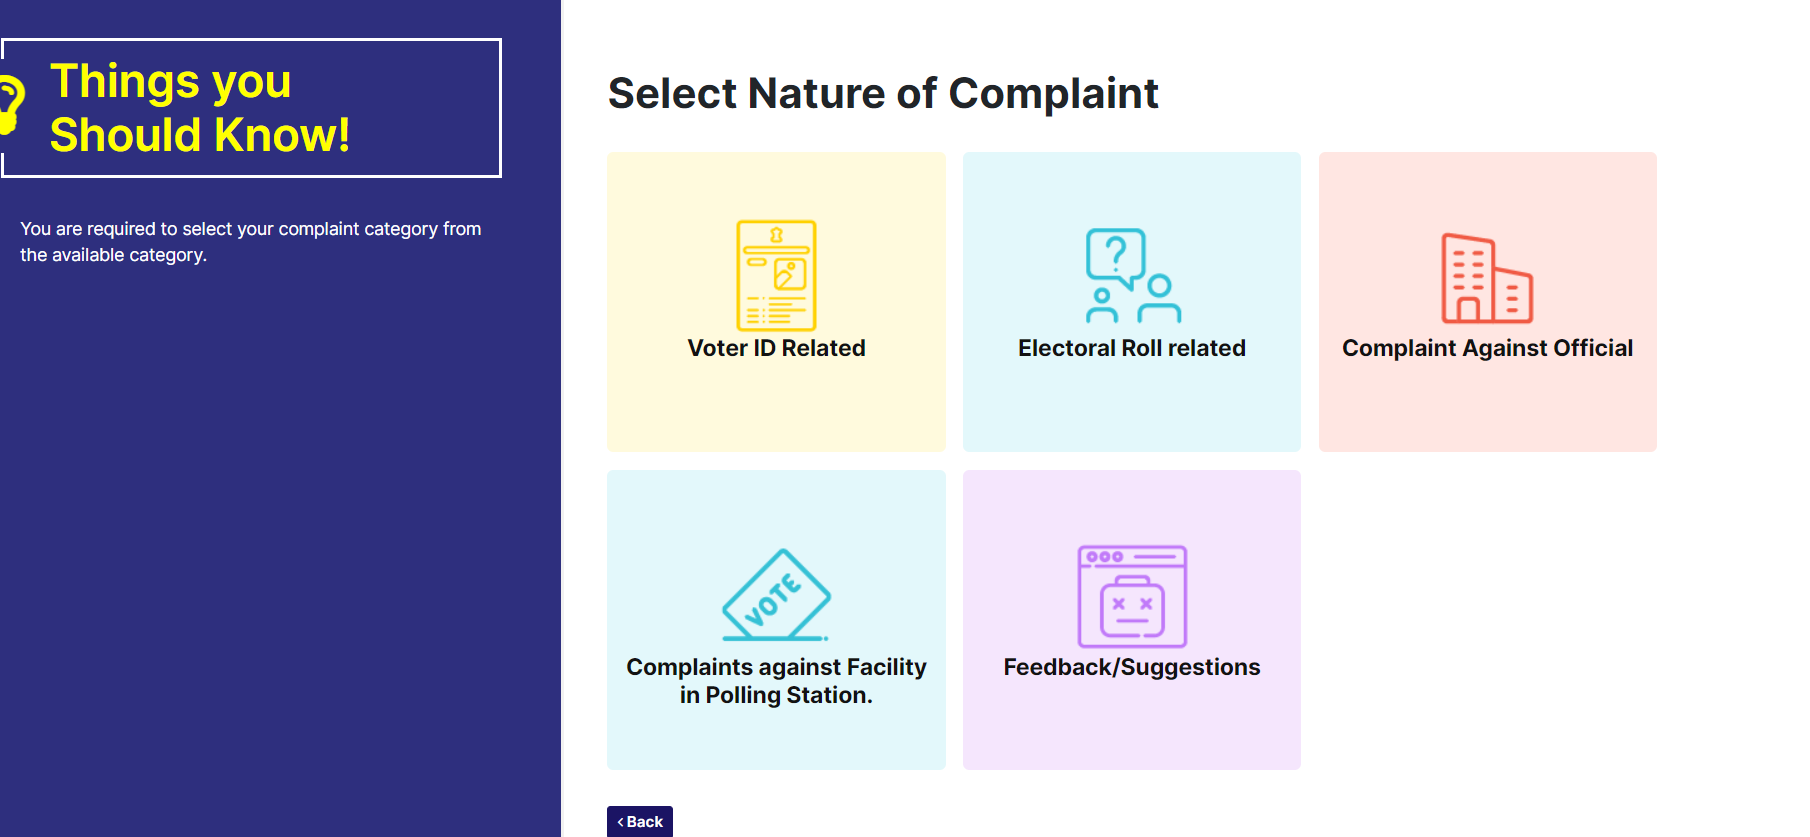 CHOOSE-NATURE-OF-COMPLAINT-RELATED-VOTER-ID